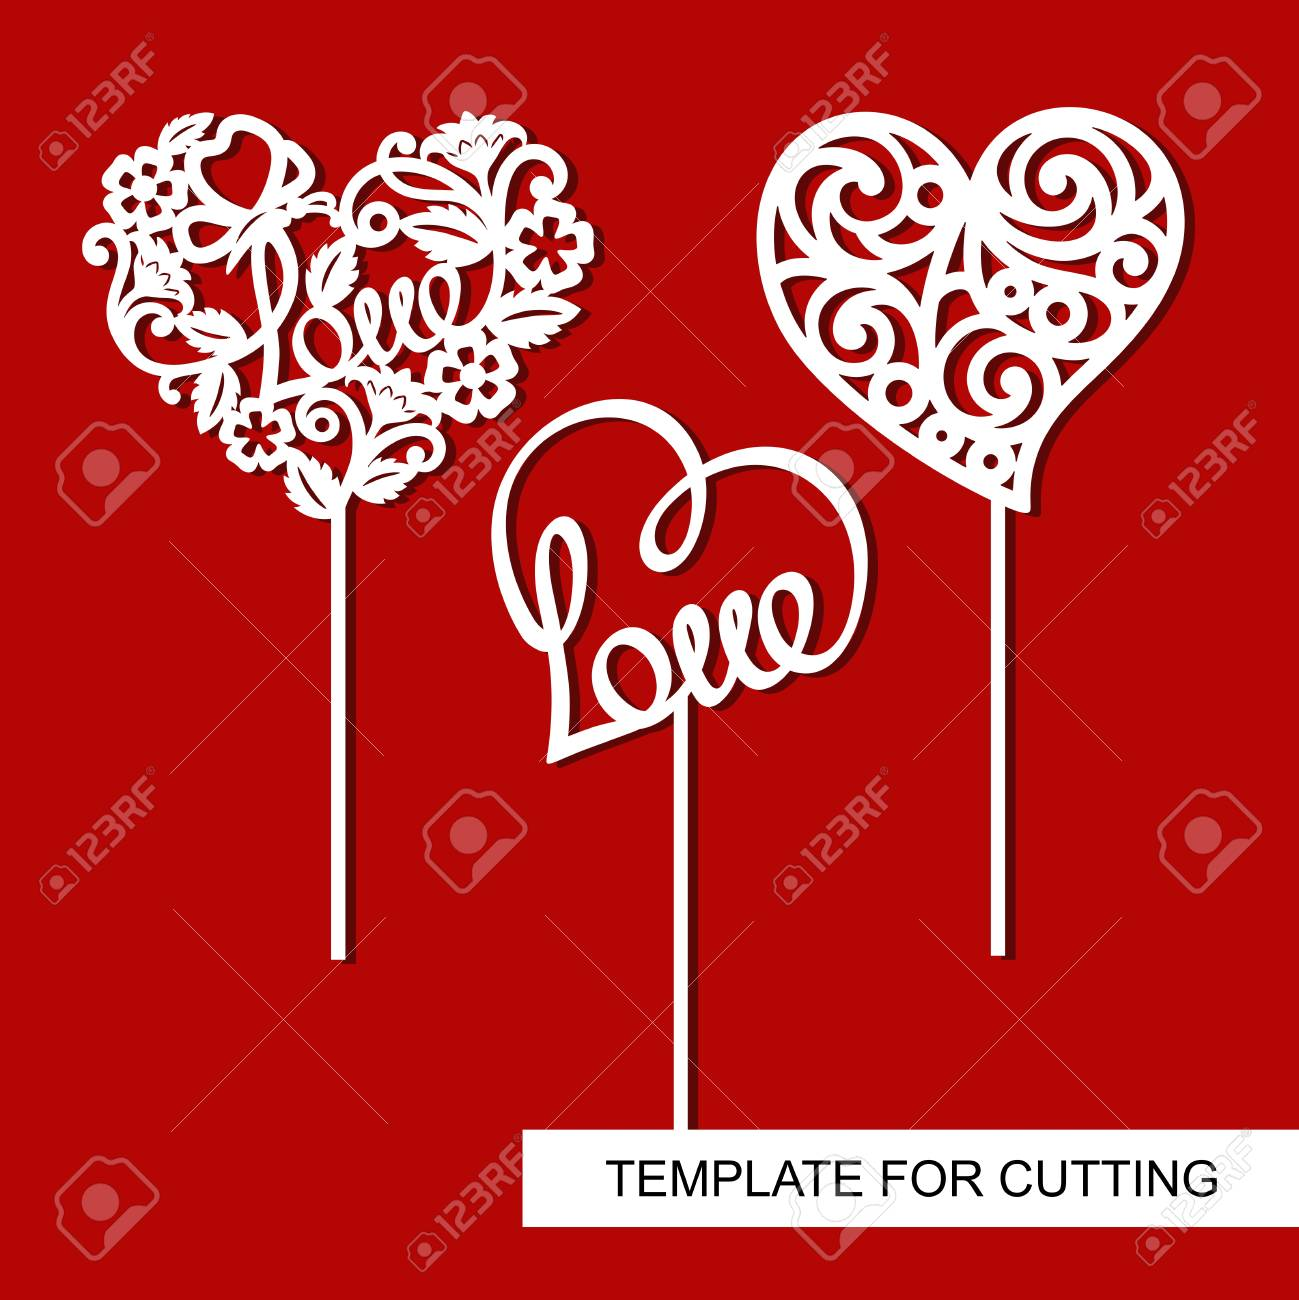 Set of toppers. Hearts. Decoration for Valentine's Day. Template for laser cutting, wood carving, paper cut and printing. - 102558023